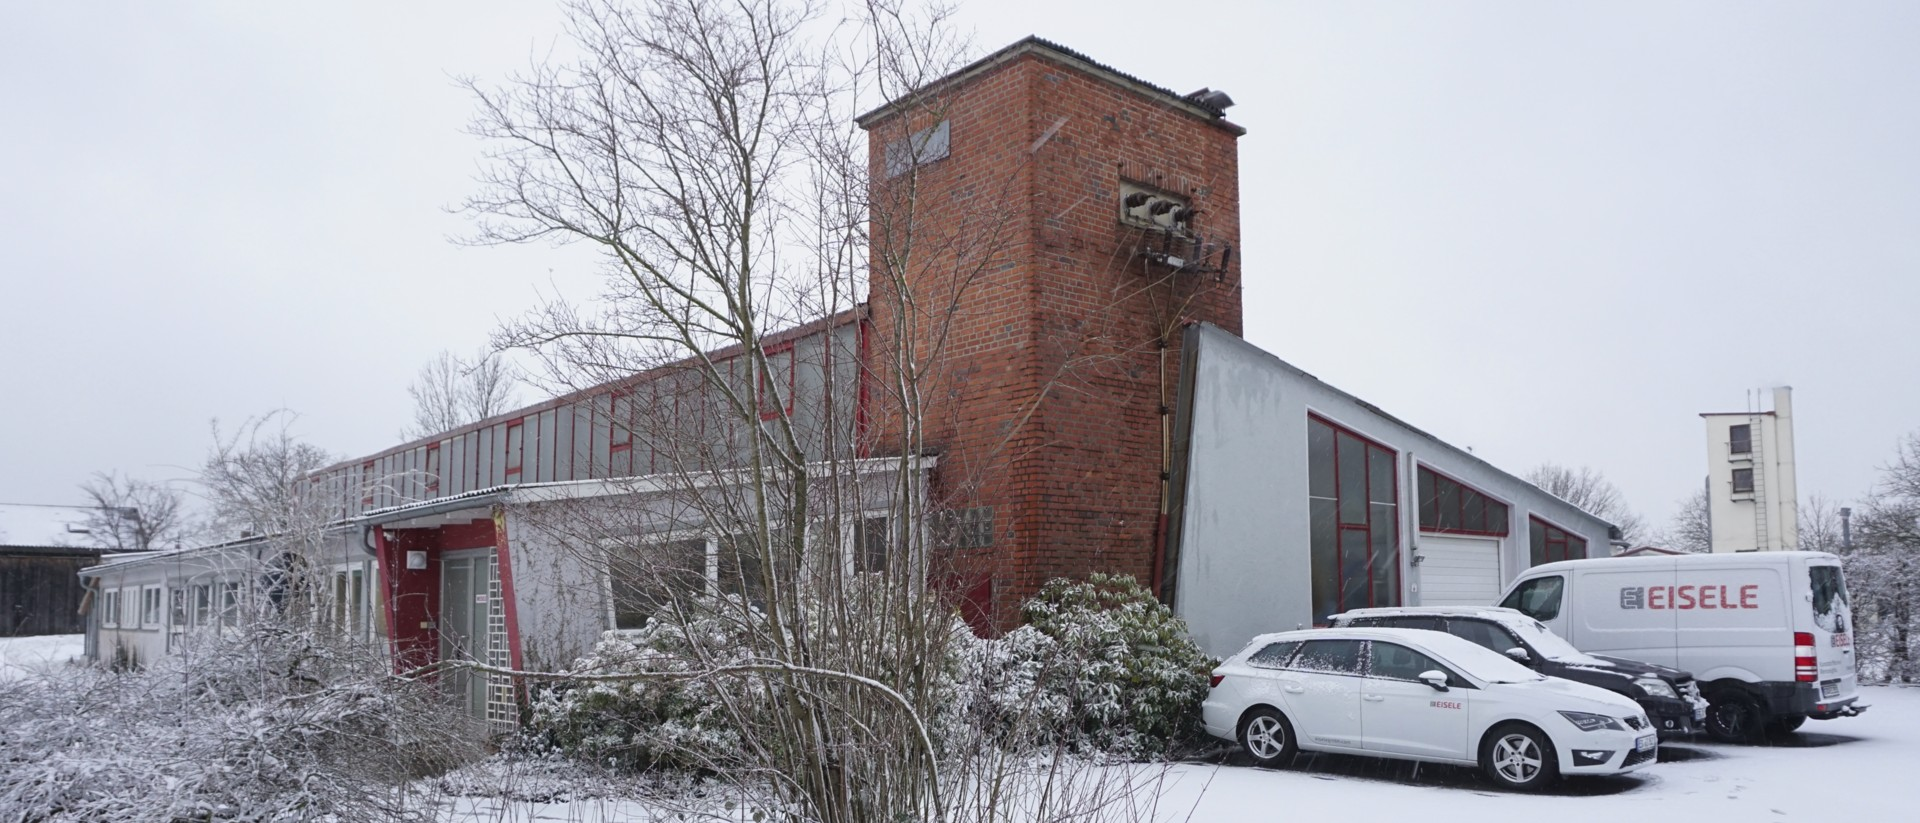 Company building in winter